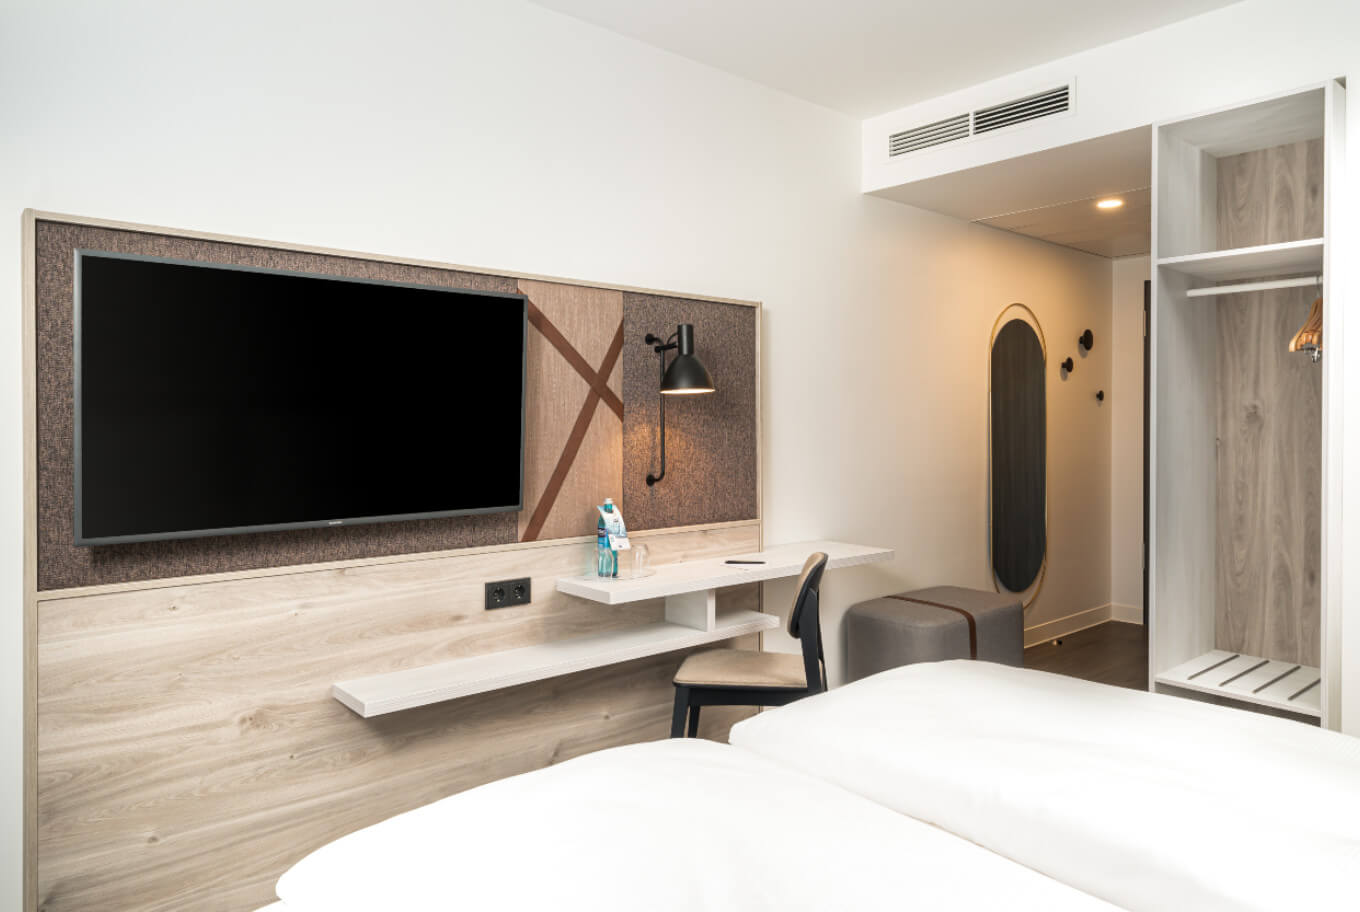 Double room overnight stay at Arthotel ANA Amber.